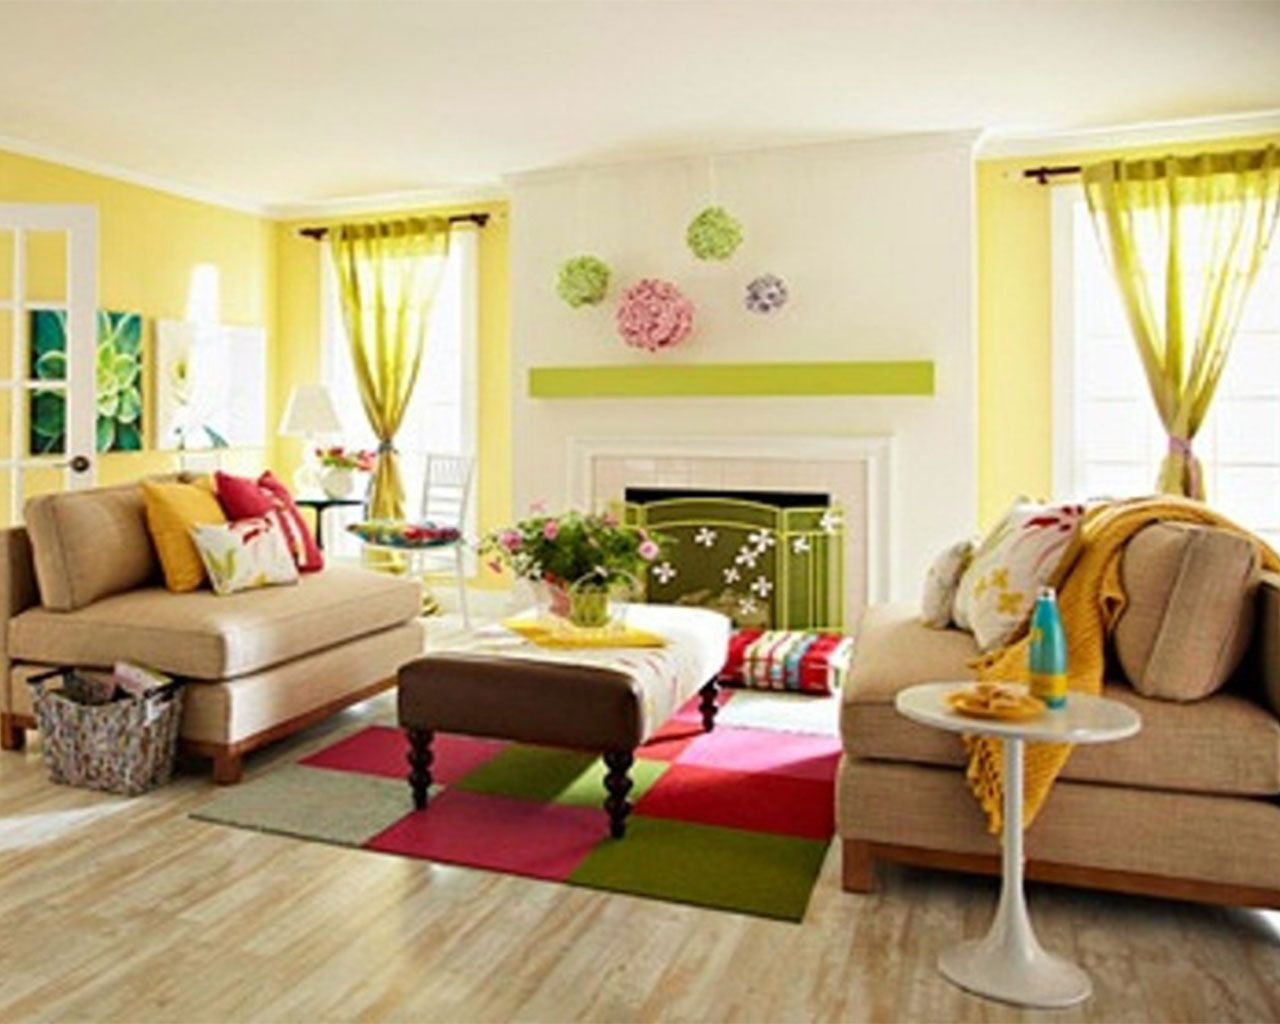 This is such a pretty living room colorful living room ideas for decorations